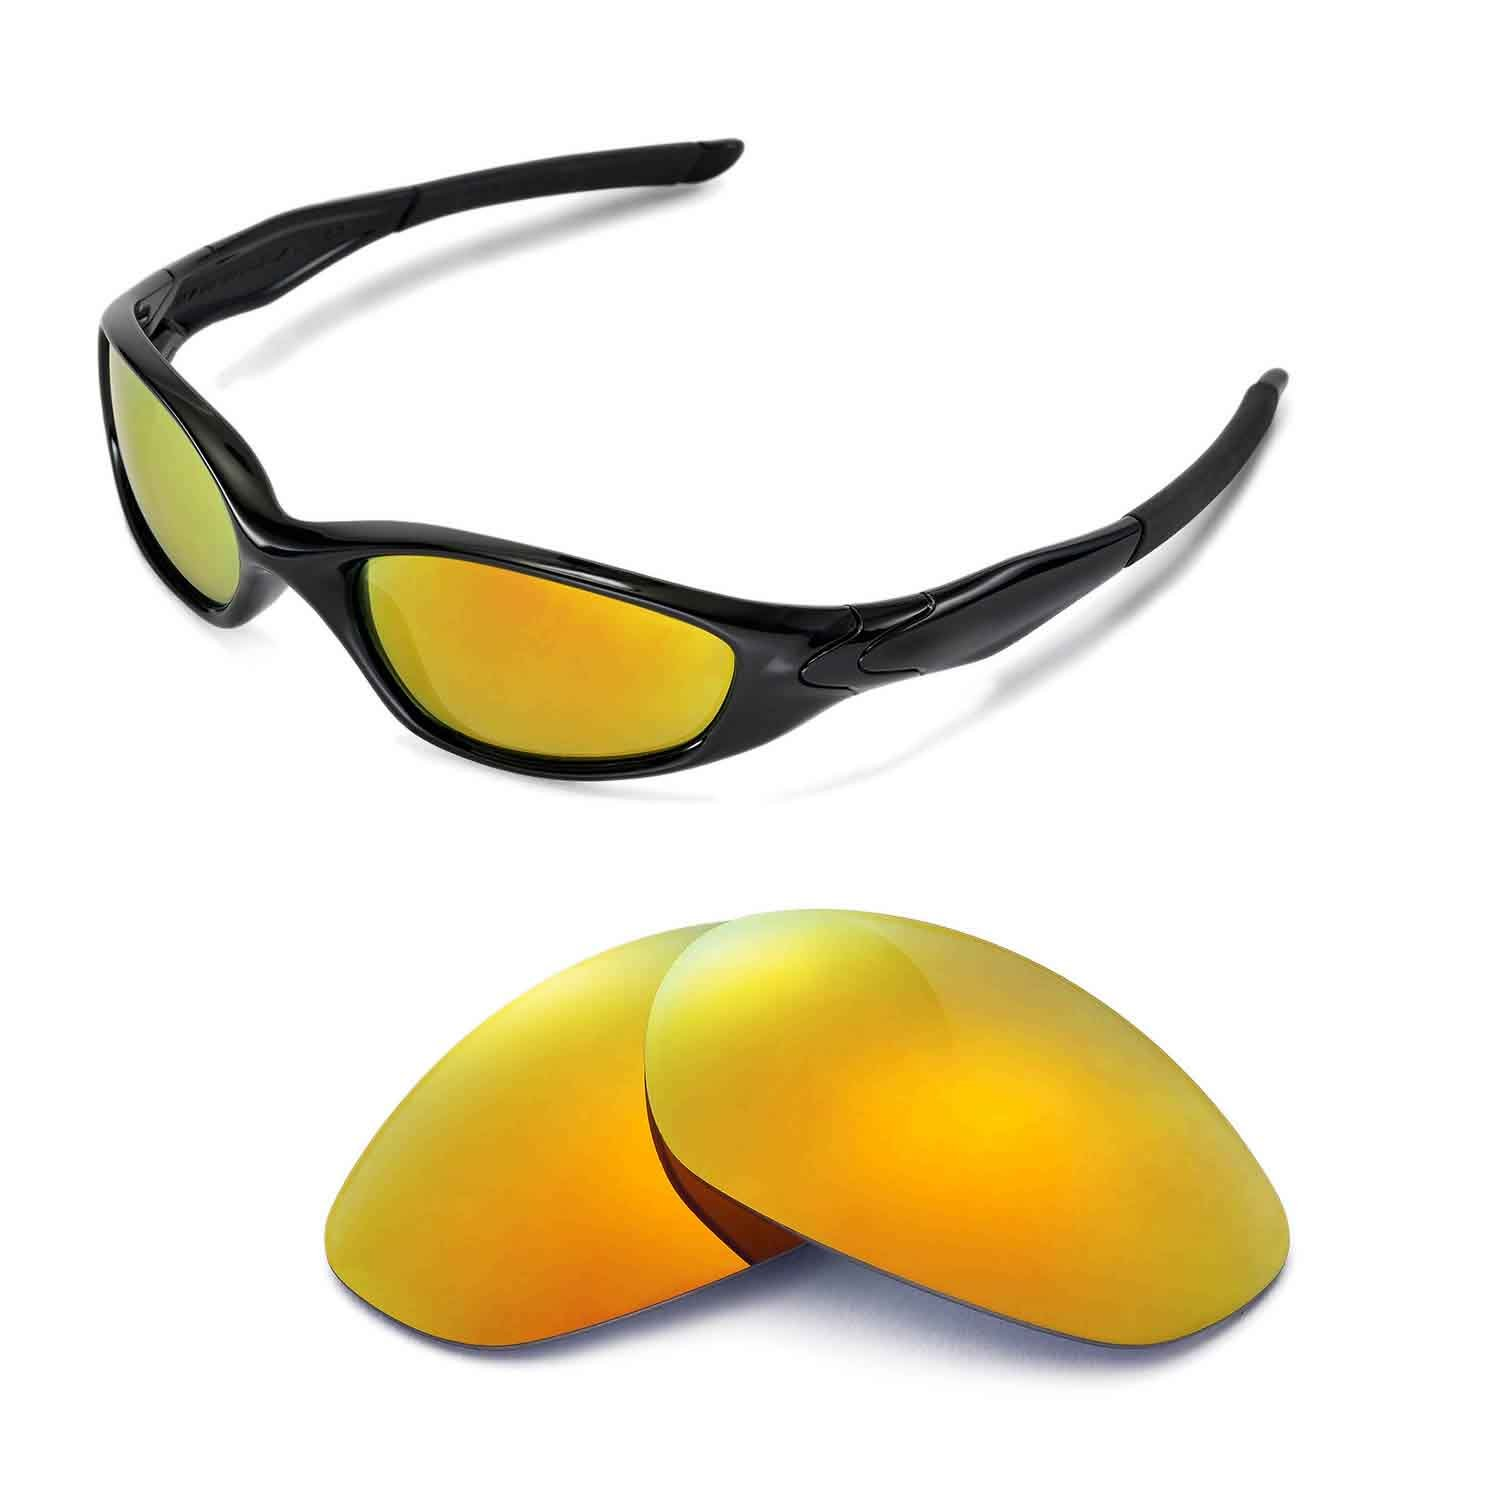 feb88eba666 Amazon.com  Walleva Replacement Lenses for Oakley Minute 2.0 Sunglasses - 6  Options Available (24K Gold Mirror Coated - Polarized)  Clothing